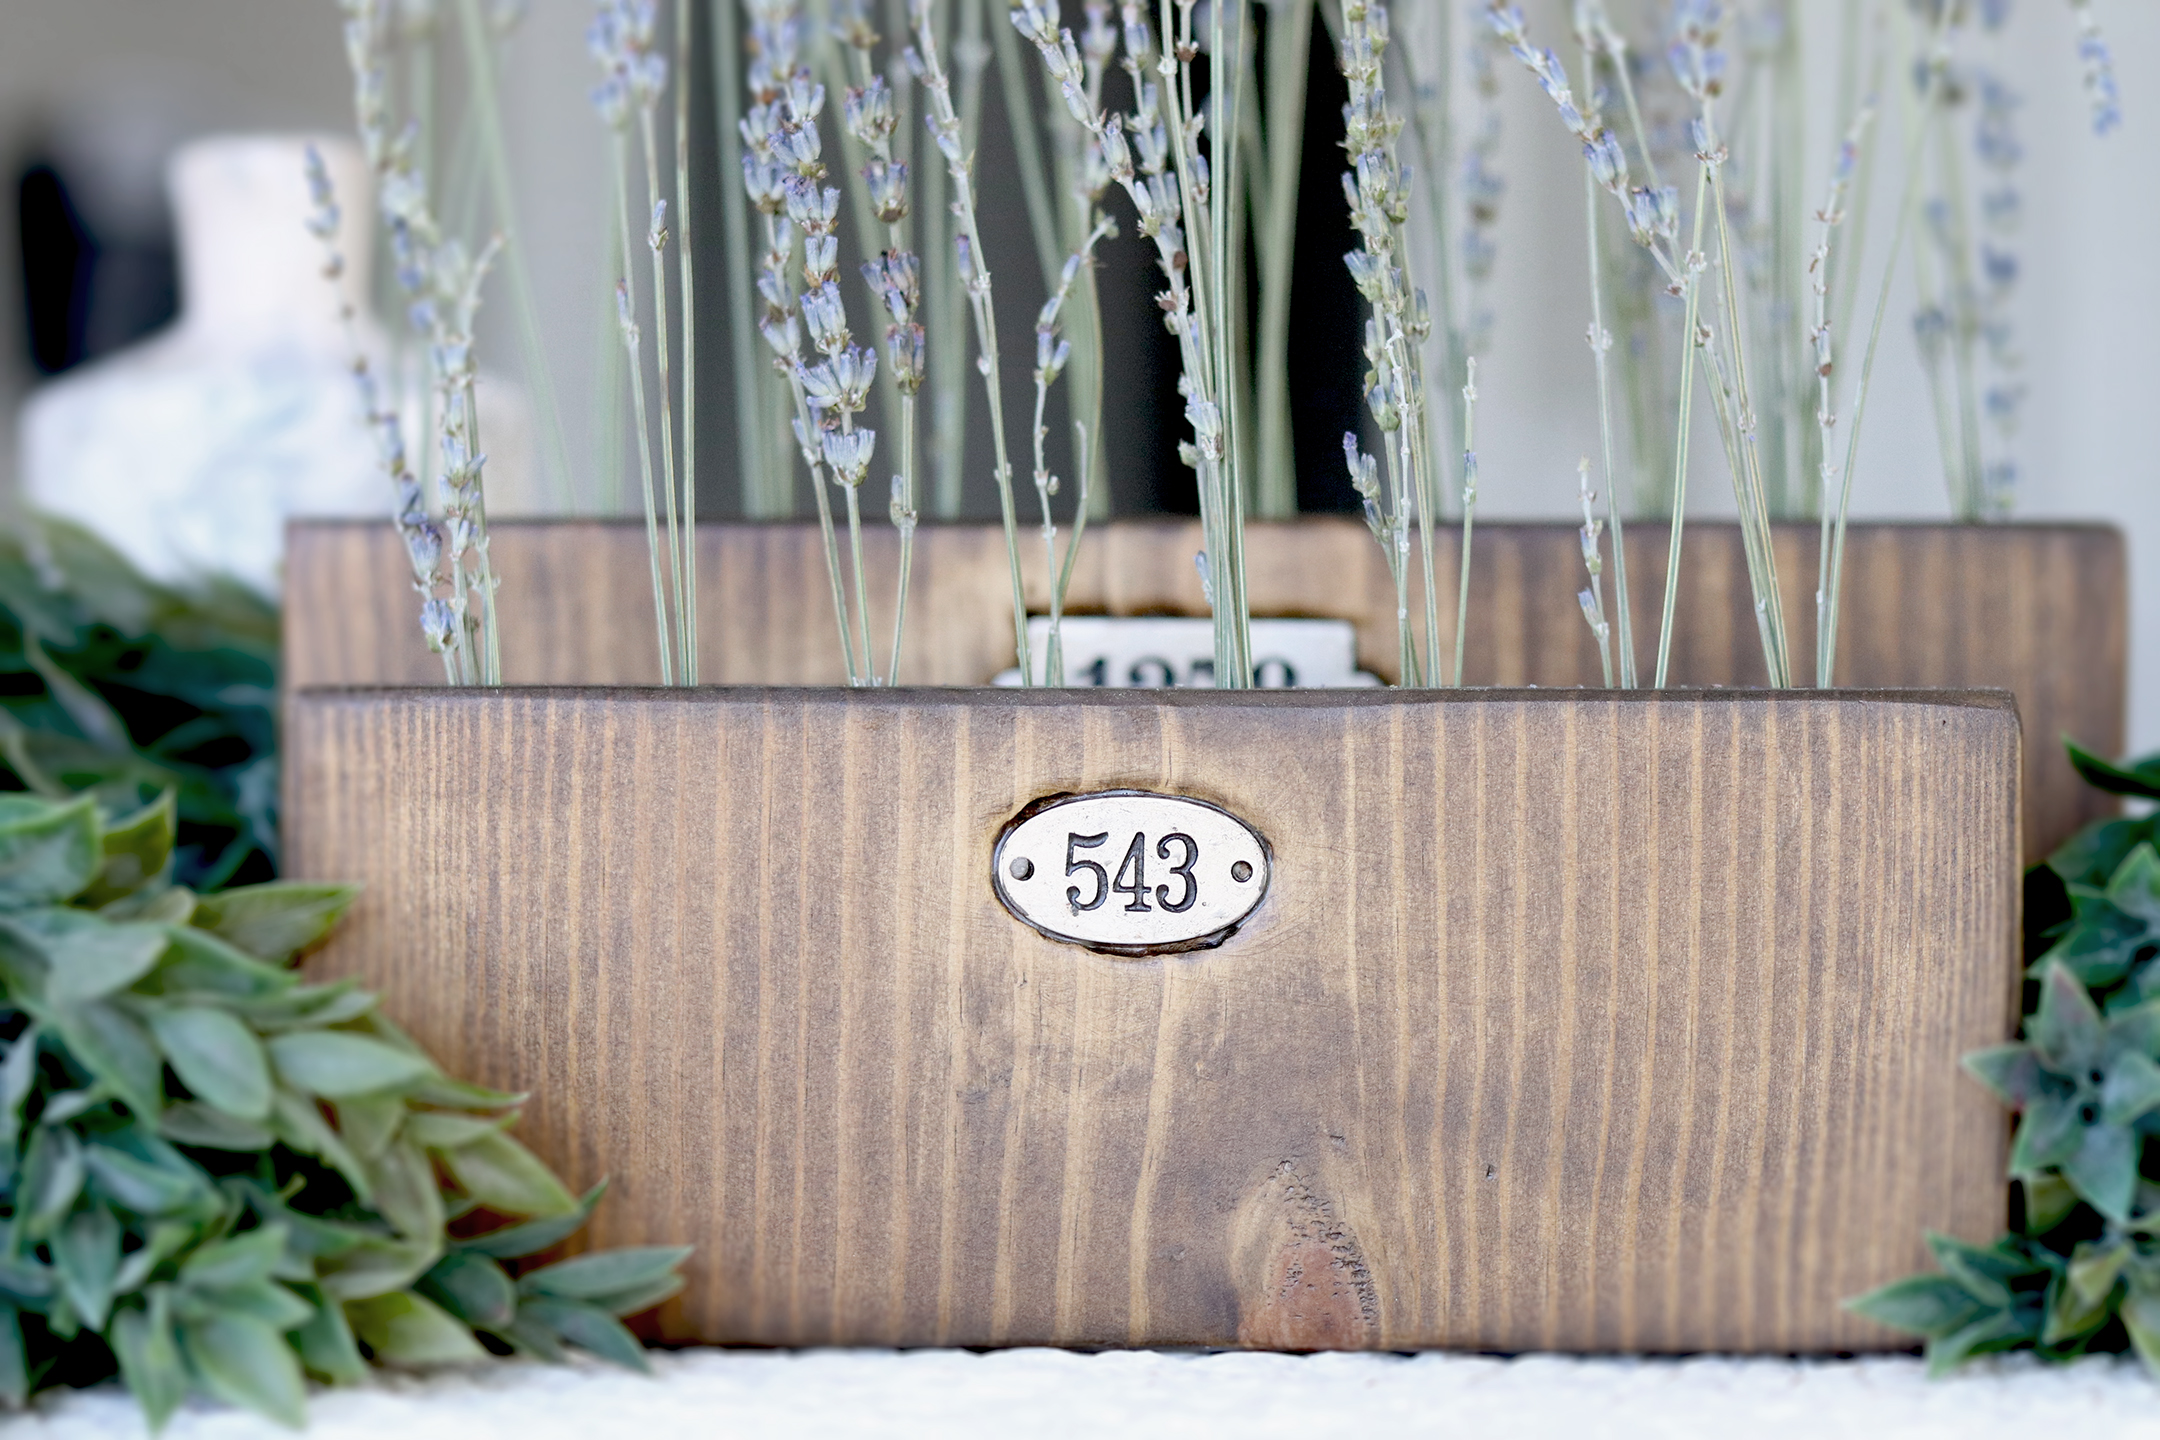 Boroughfare Home Vintage Lavender Home Decor with Metal Numbers